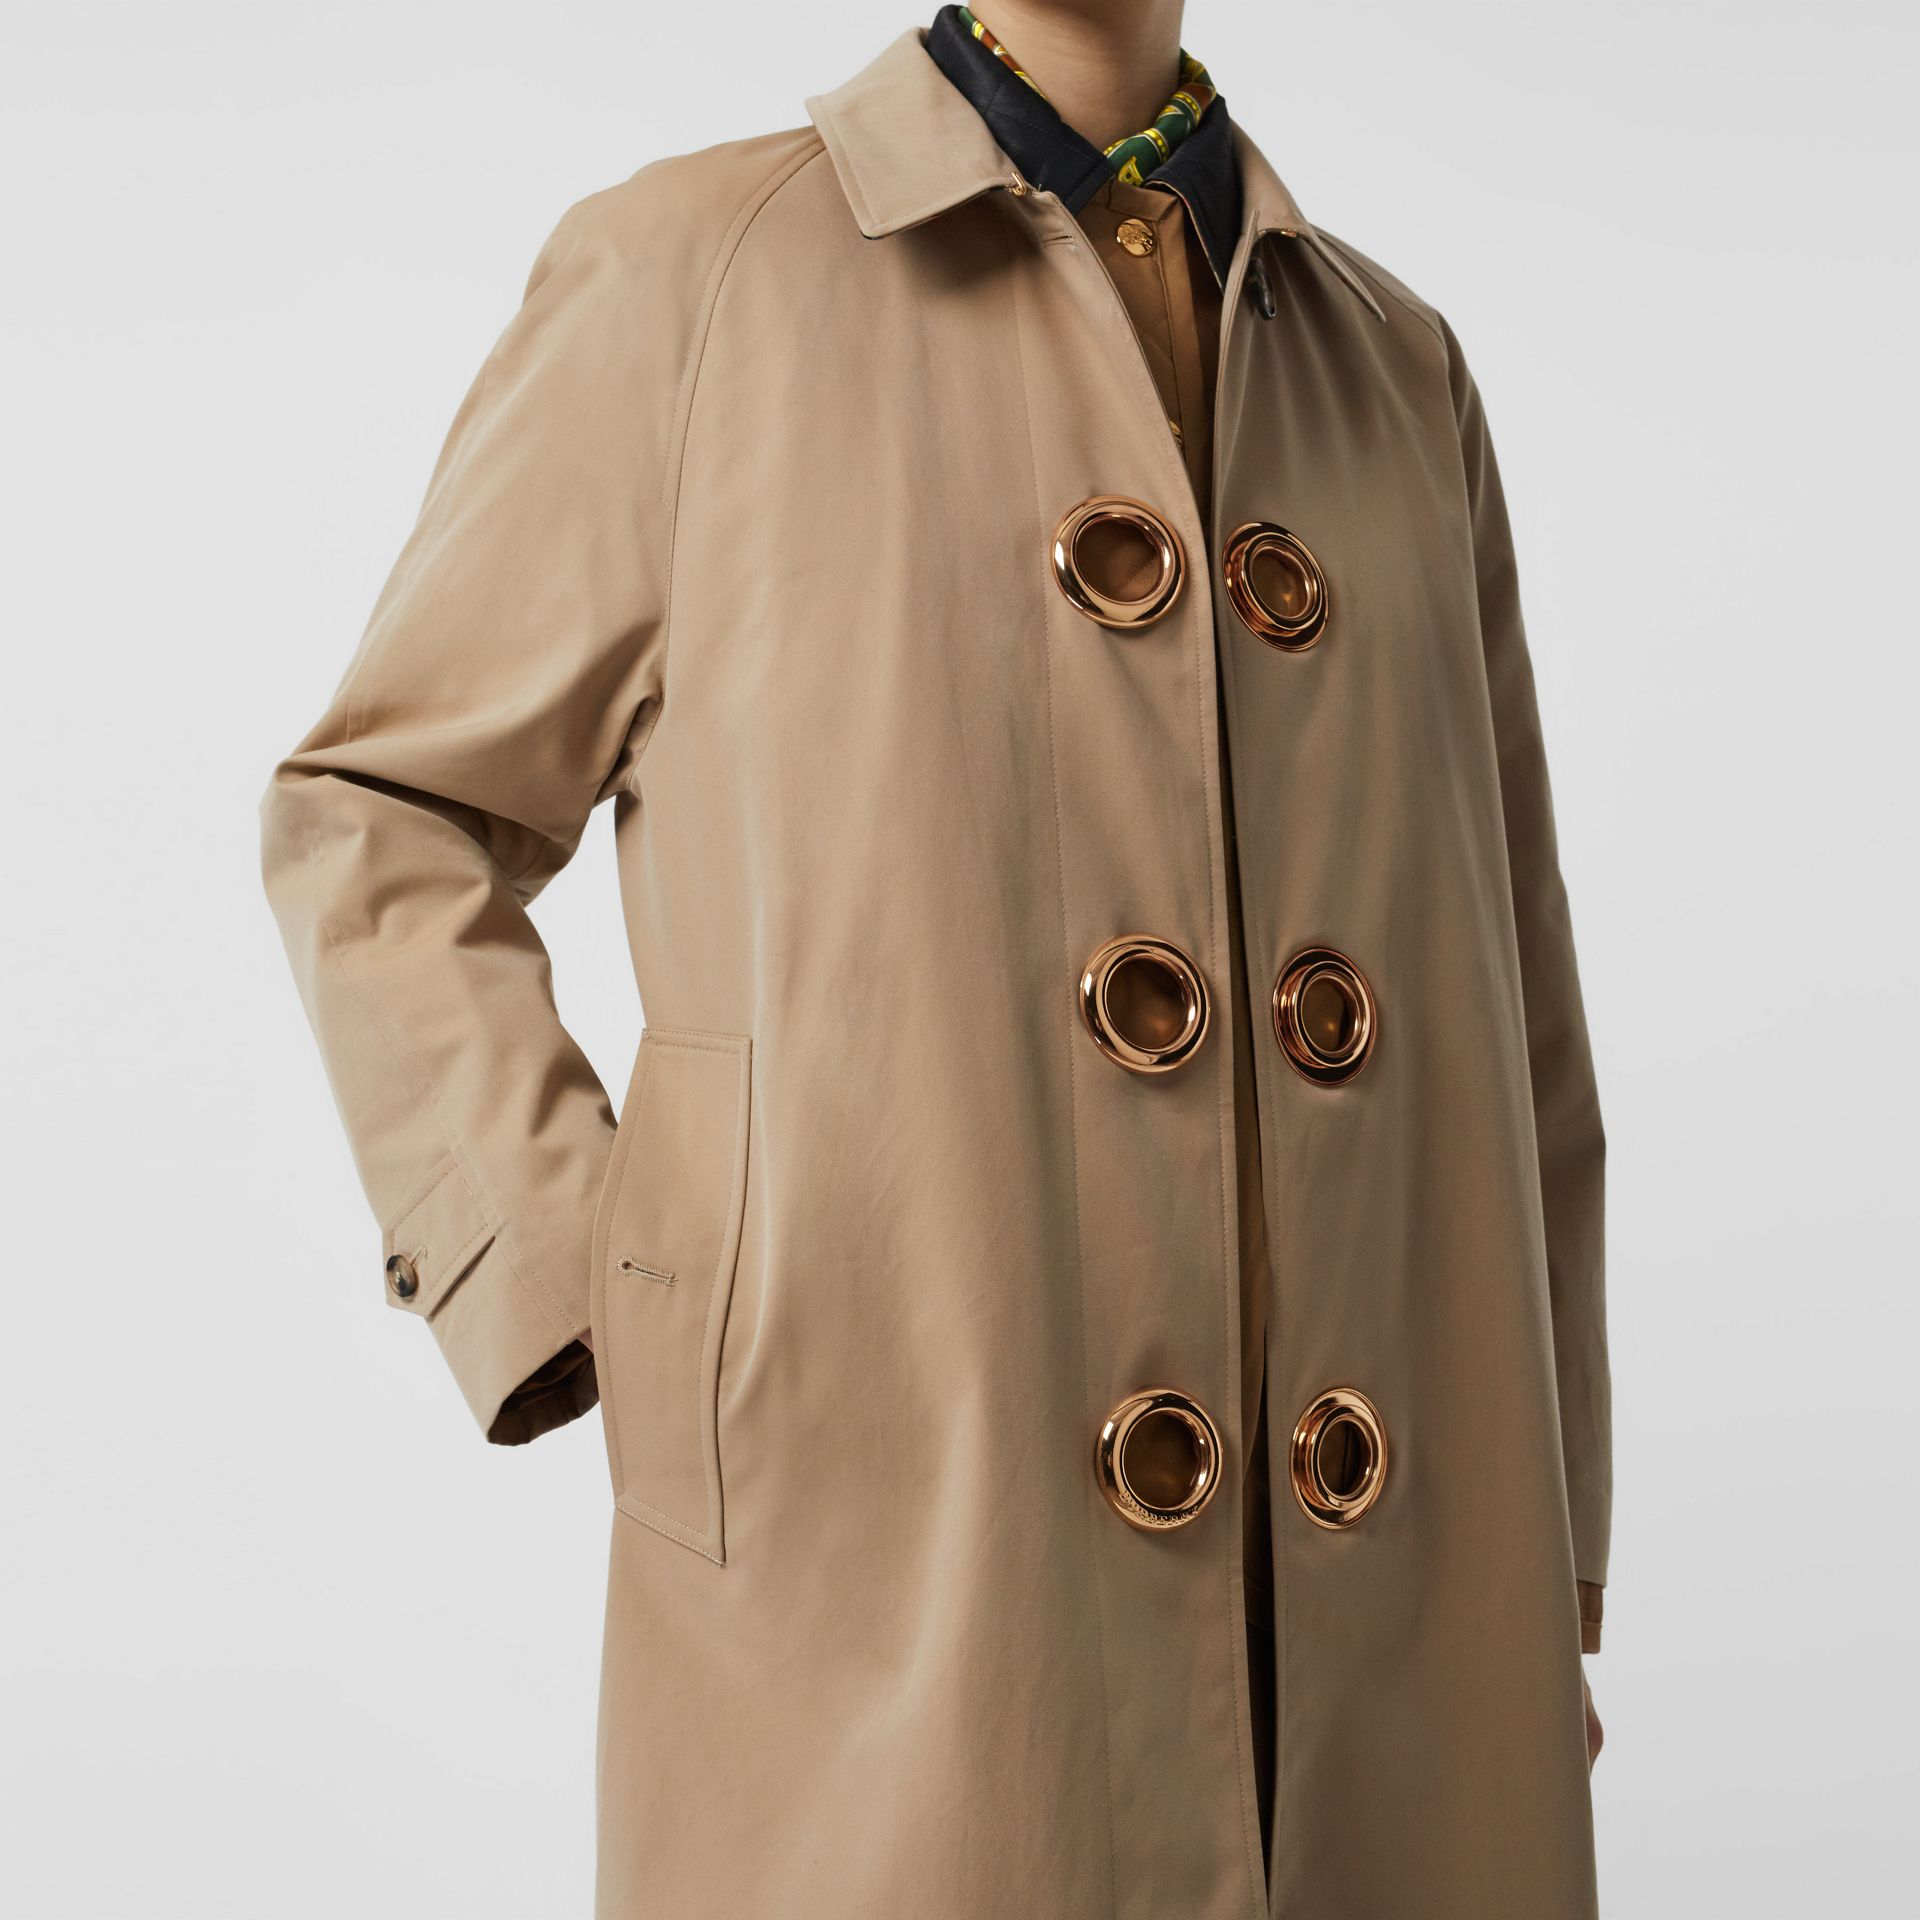 Grommet Detail Cotton Gabardine Car Coat in Honey - Women | Burberry Singapore - gallery image 5